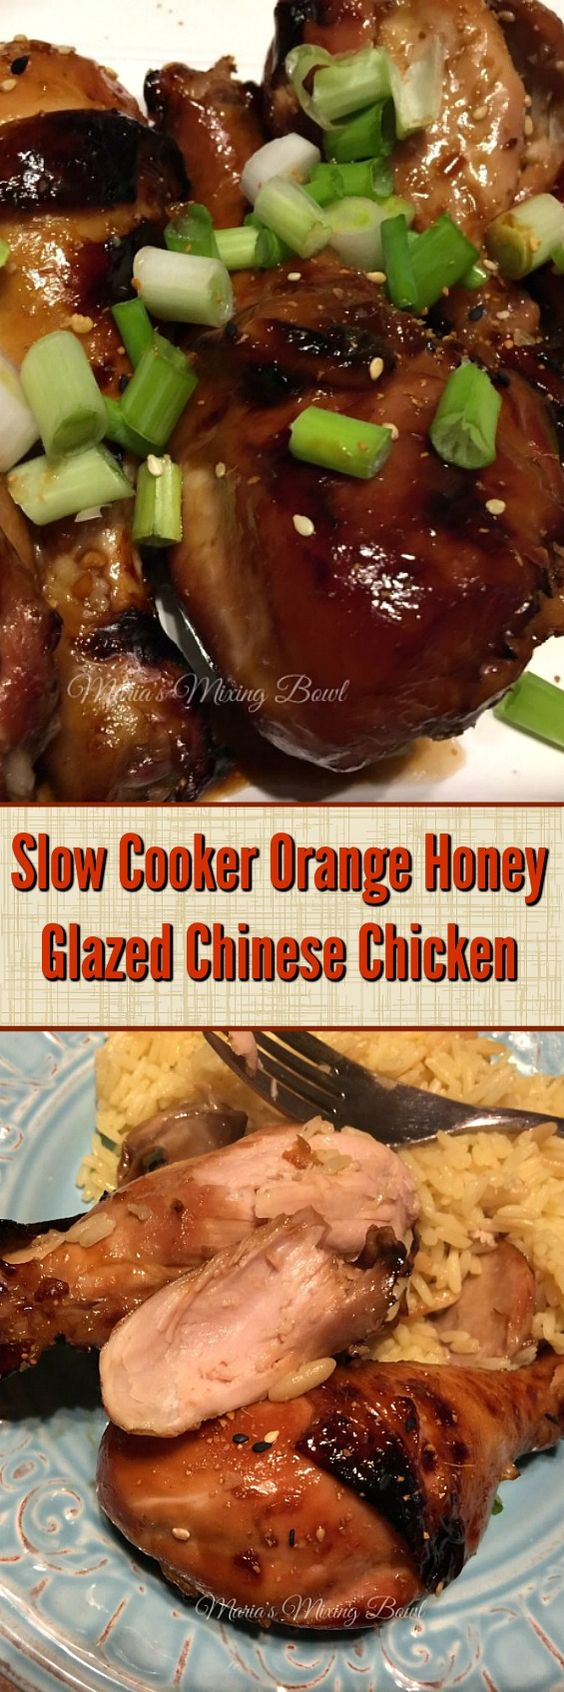 Slow Cooker Orange Honey Glazed Chinese Chicken-  This easy slow cooker dinner combines the sweetness of the orange marmalade and honey, the spiciness of red pepper flakes and the Asian flavors the whole family loves.